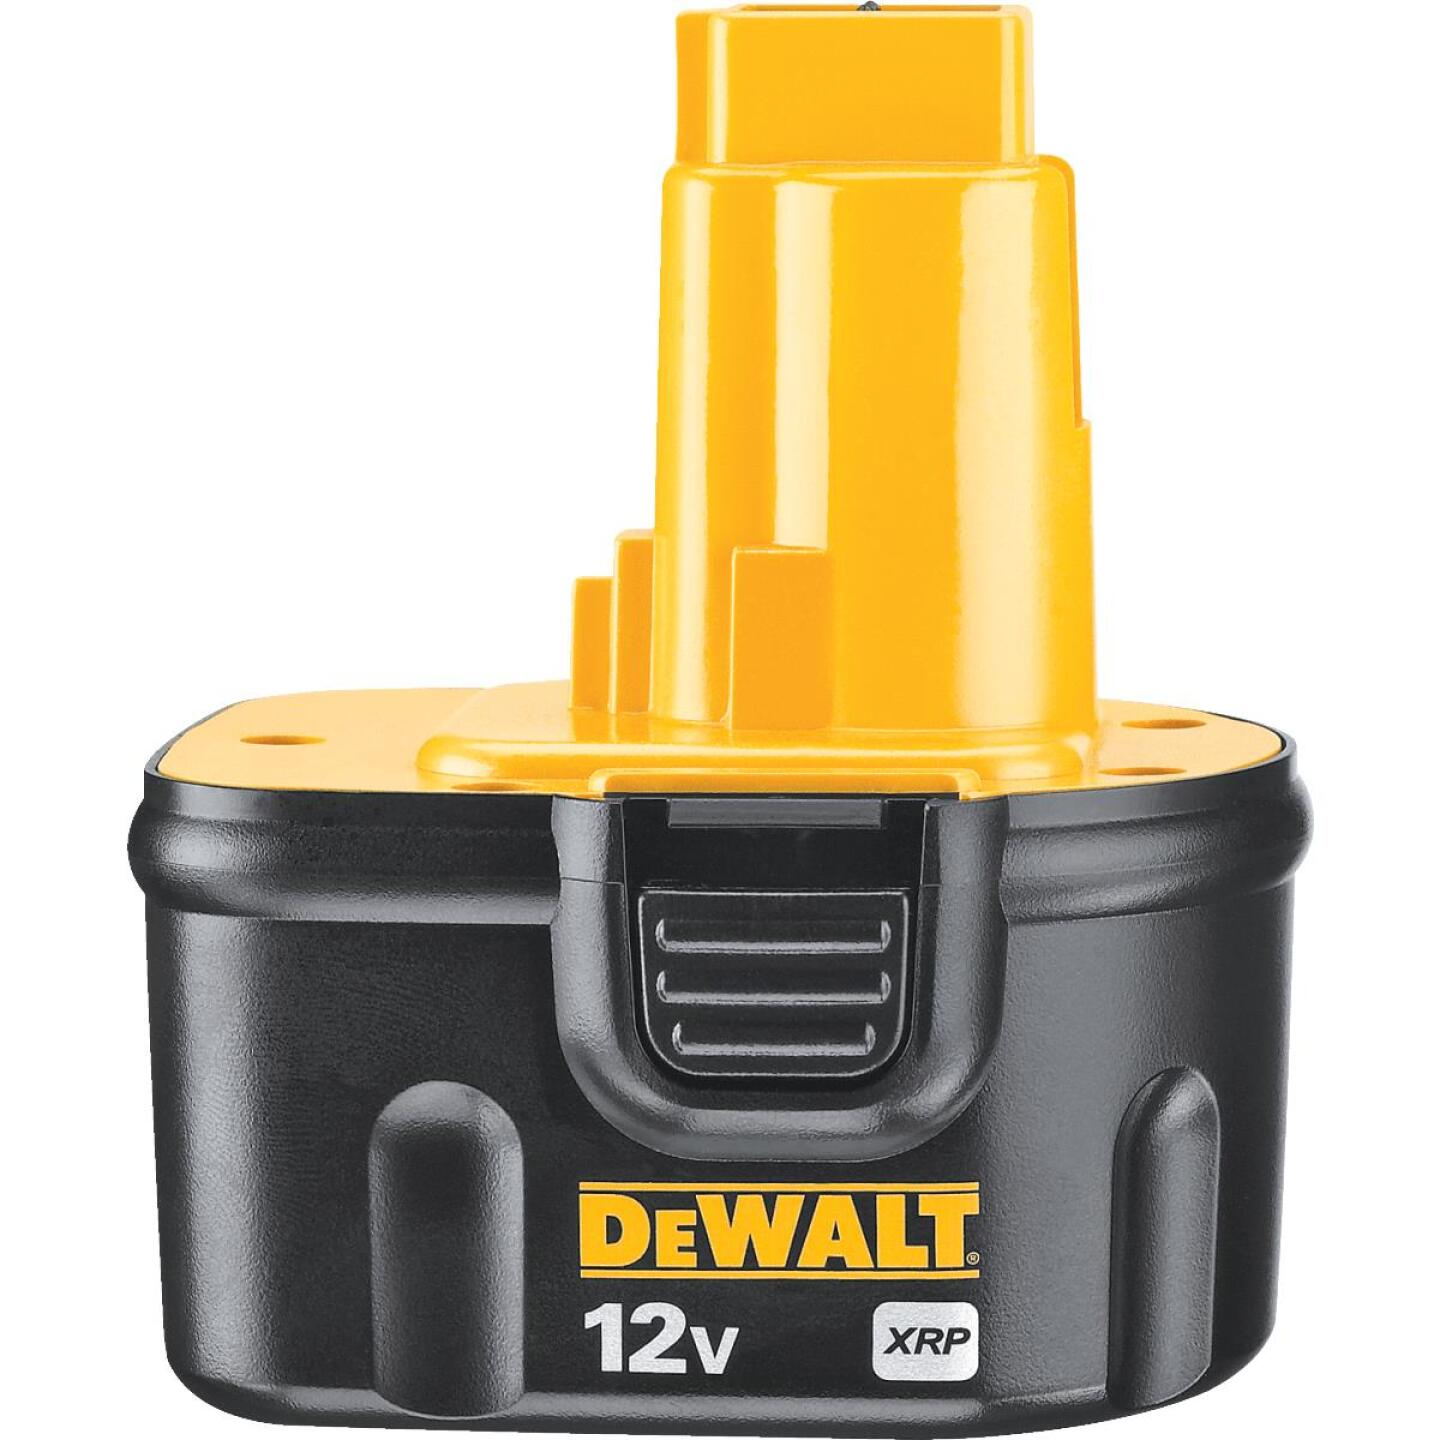 DeWalt 12 Volt XRP Nickel-Cadmium 2.4 Ah Tool Battery Image 1